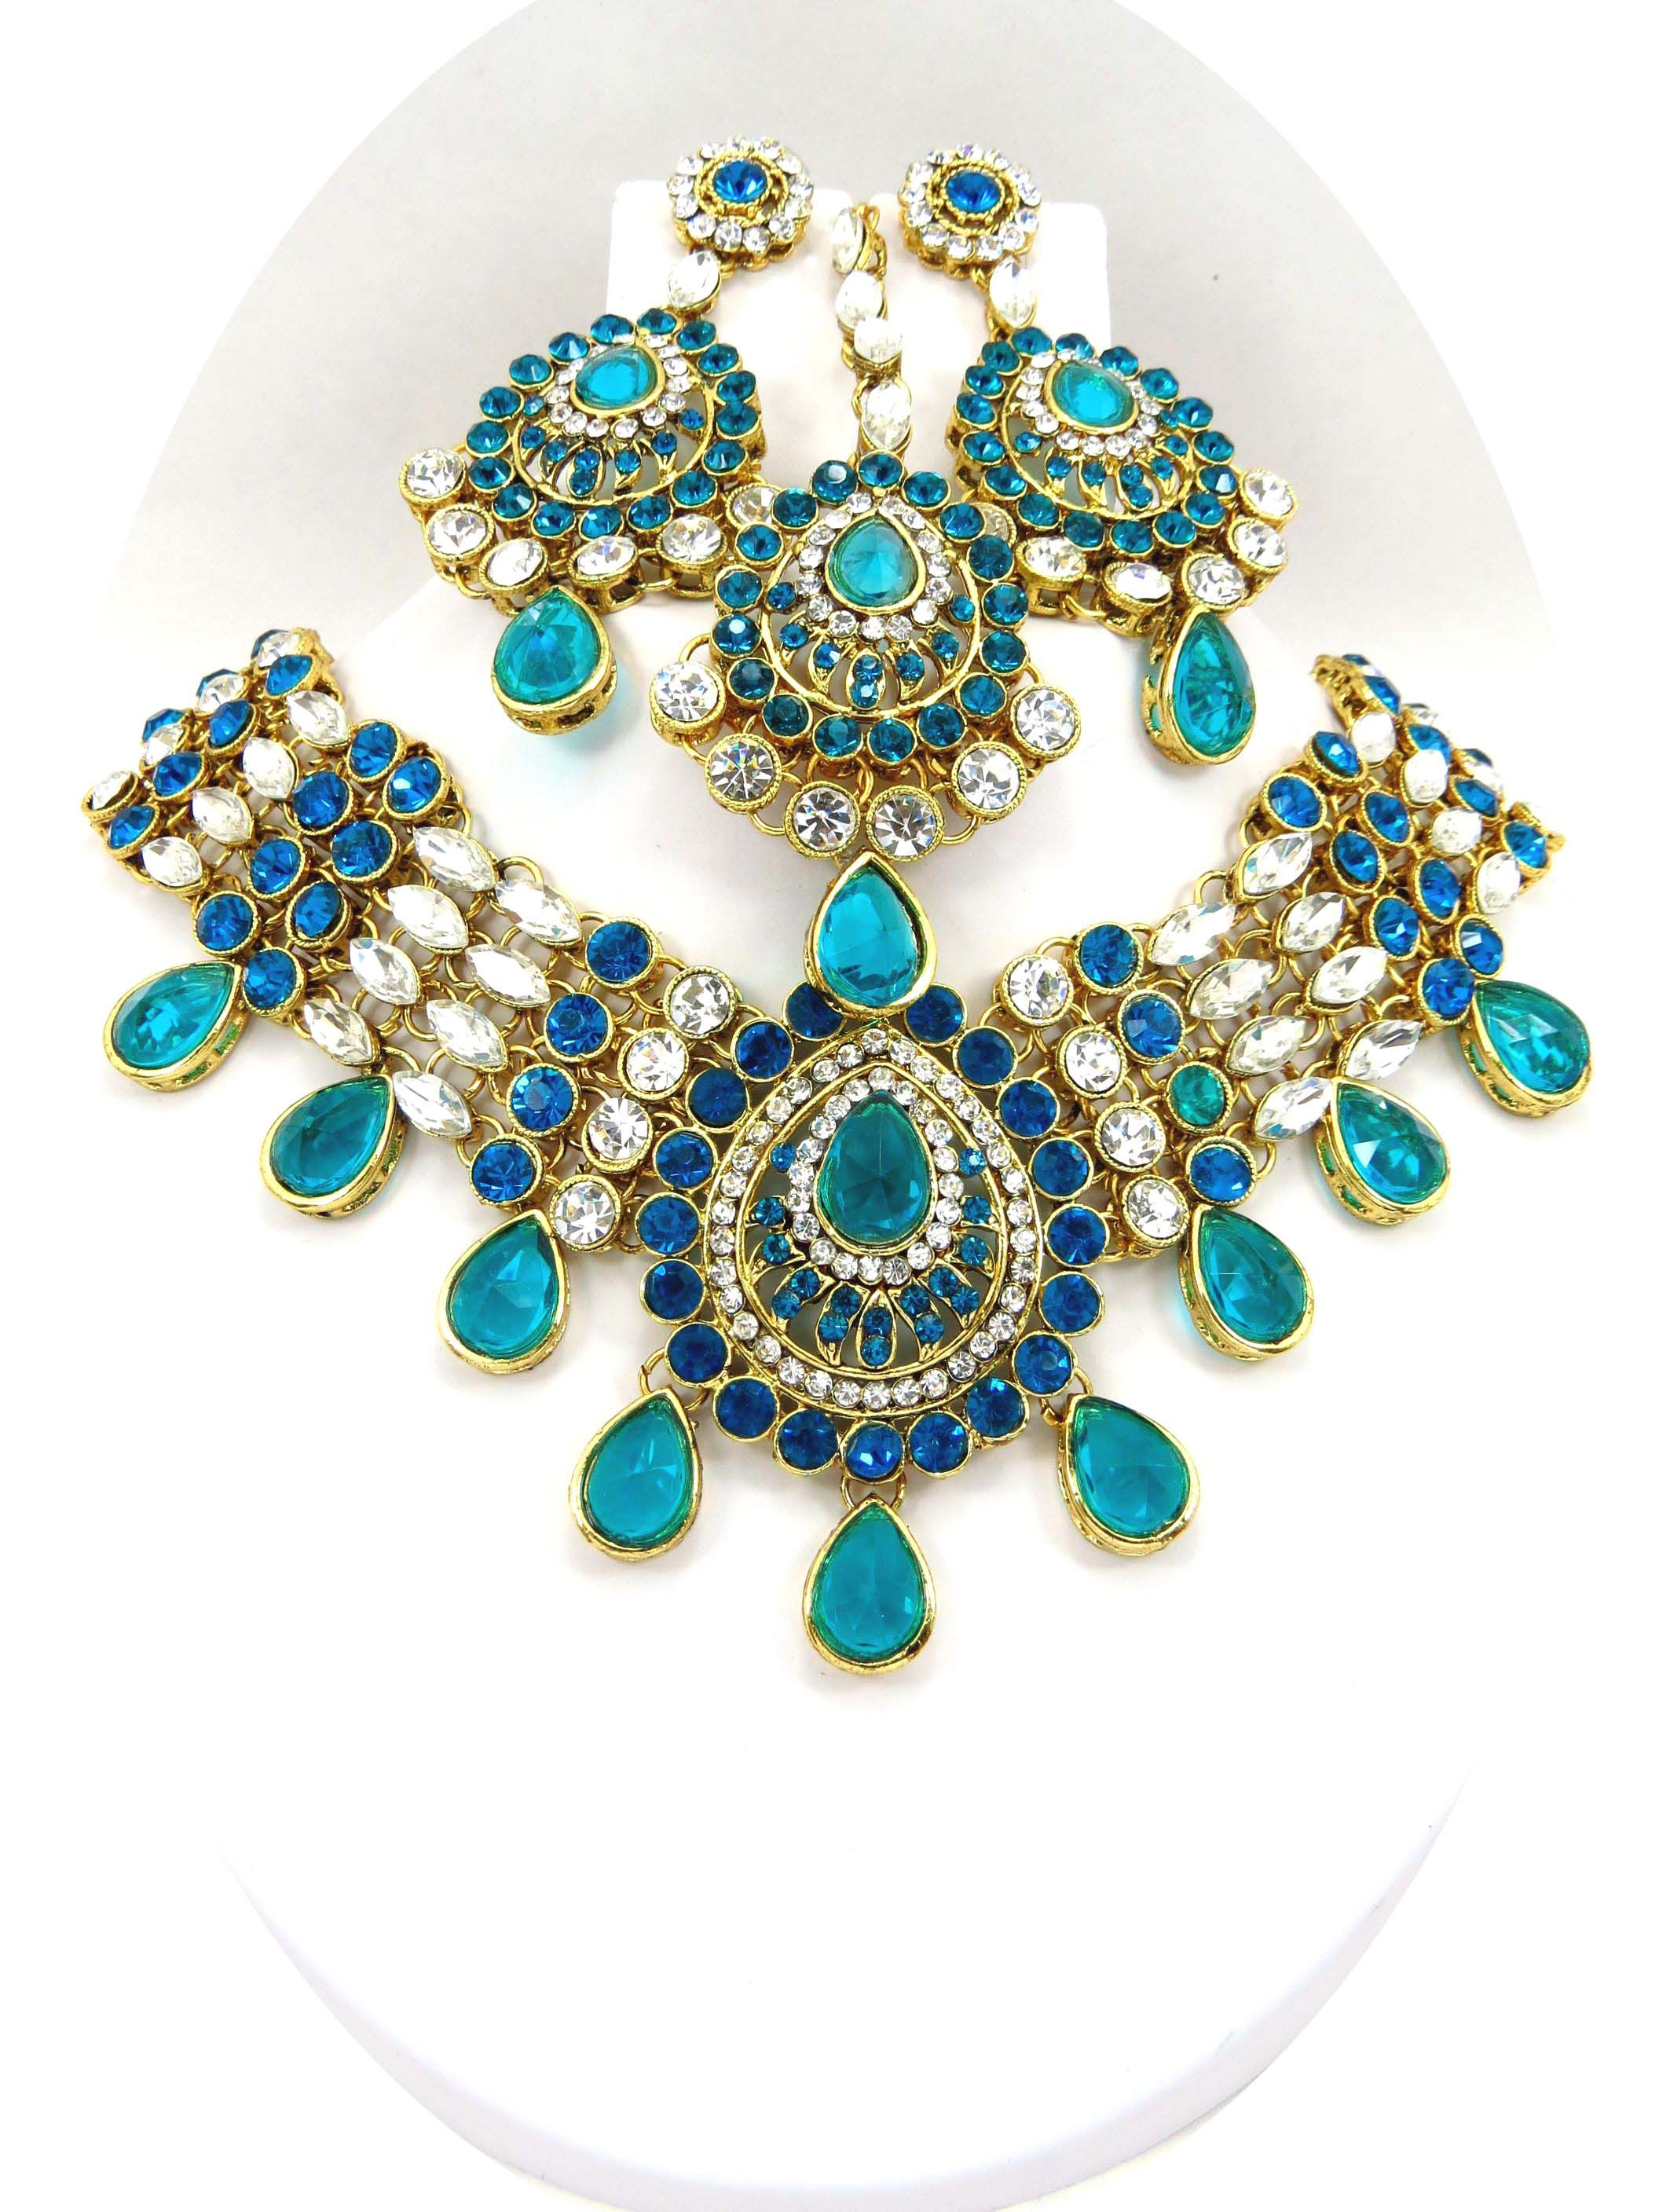 Pin by Star Divine on Wholesale Indian Jewllery Supplier Pinterest